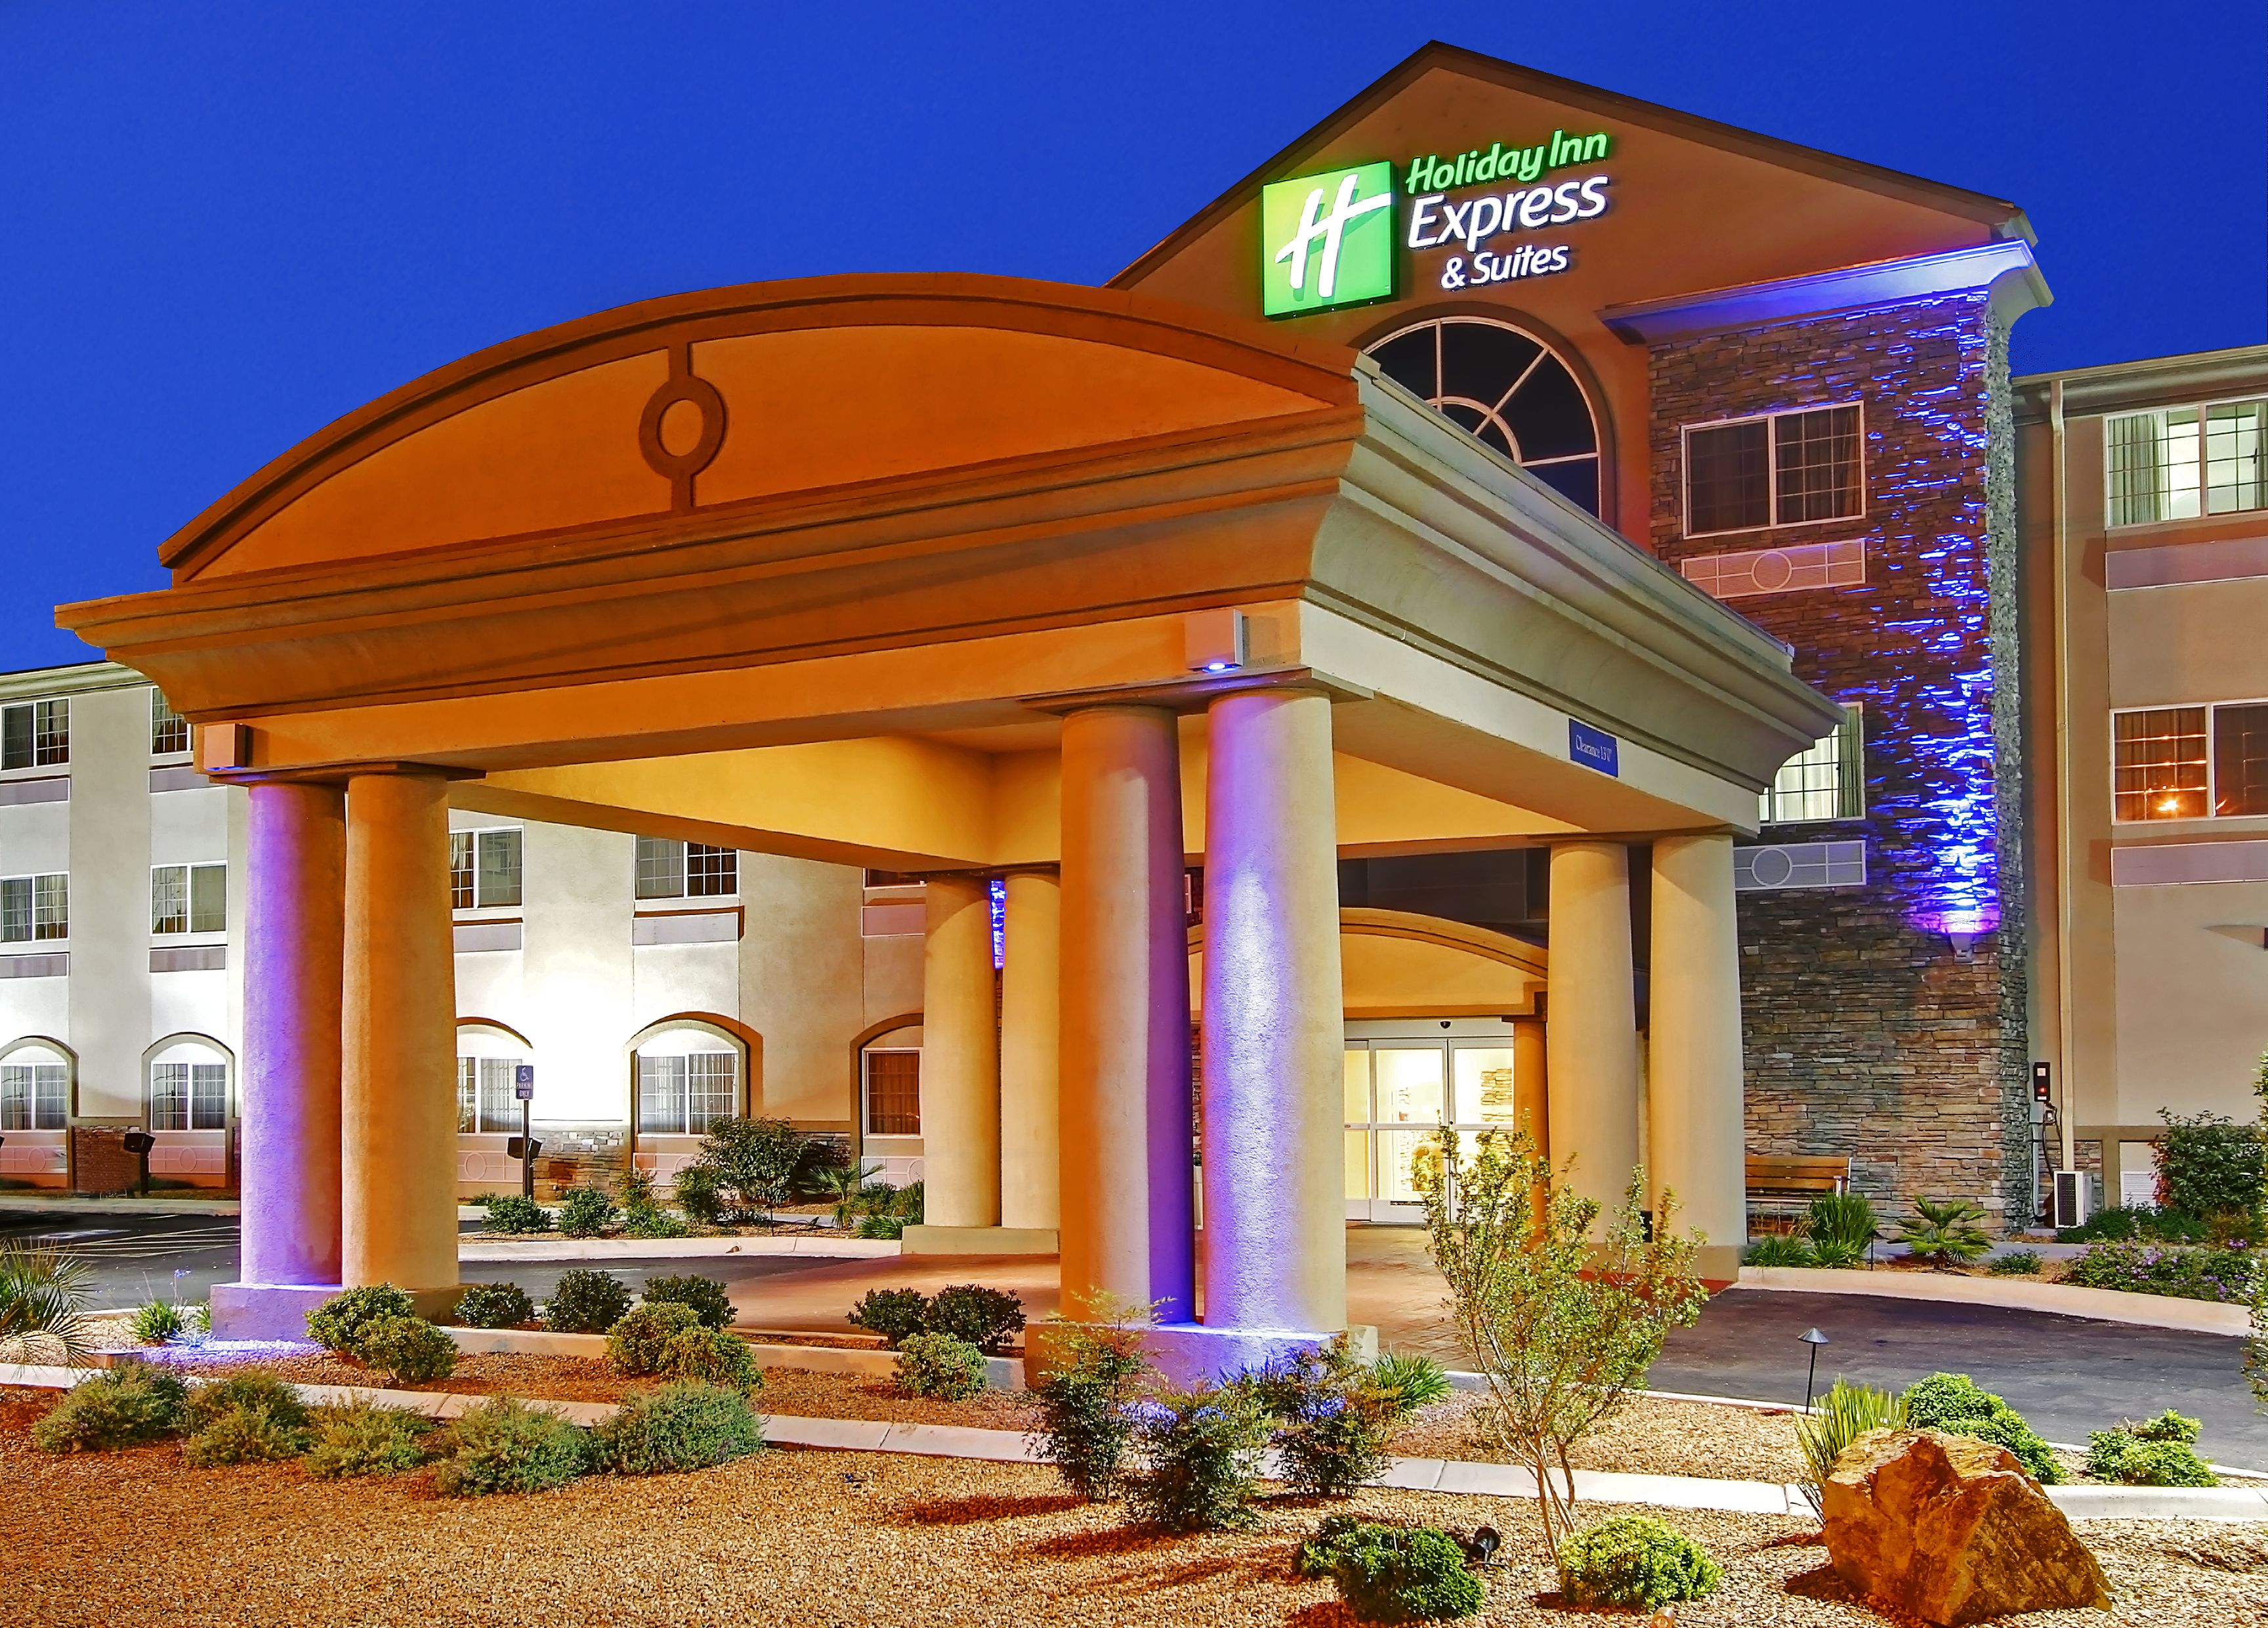 holiday inn express suites cape girardeau i 55 in cape. Black Bedroom Furniture Sets. Home Design Ideas